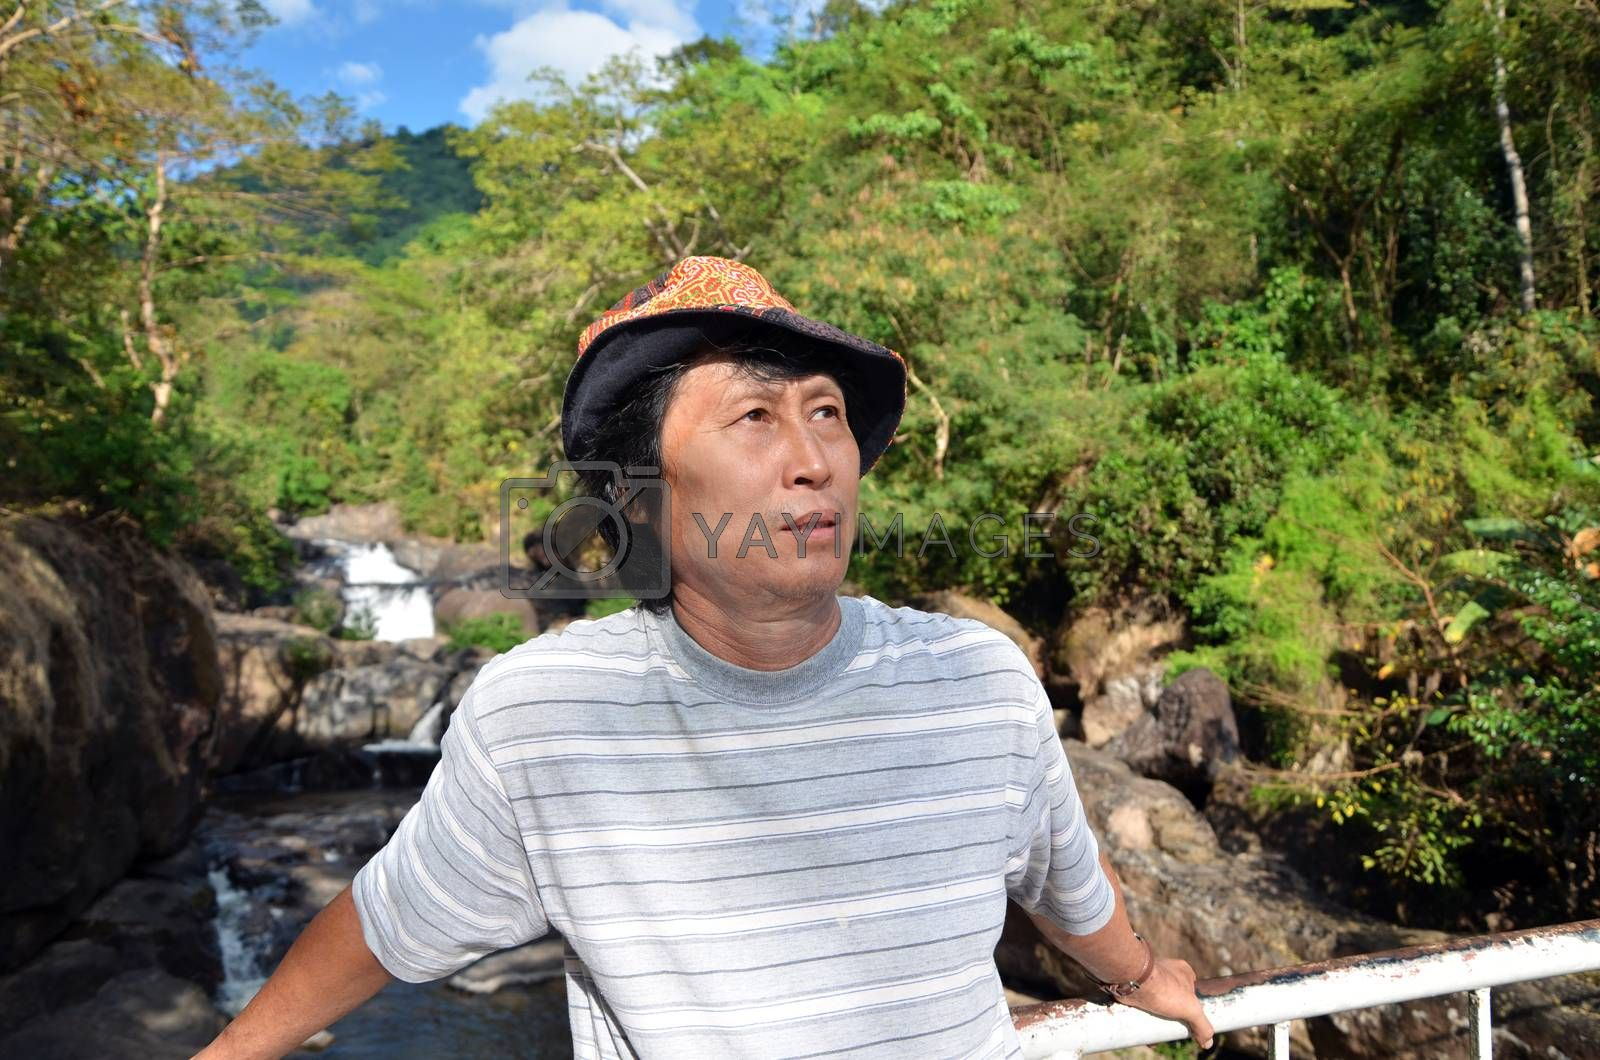 Senior man enjoying the nature with beautiful waterfall in background